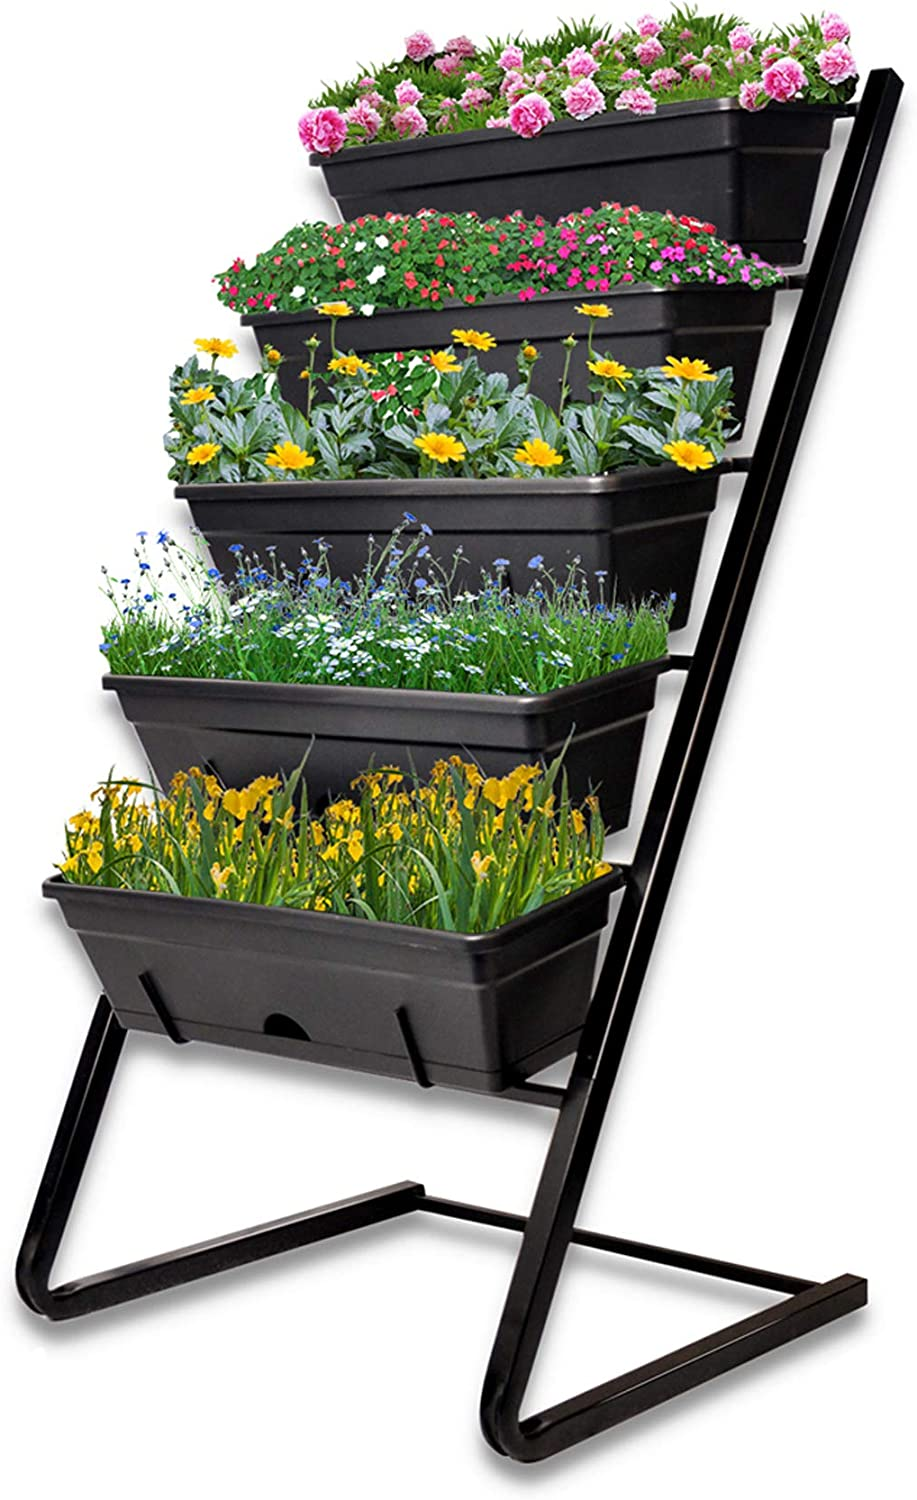 WeGuard Vertical Garden Planter, Raised Garden Bed Freestanding Elevated Planter with 5 Container Boxes, Good for Patio Balcony Indoor and Outdoor - Cascading Water Drainage